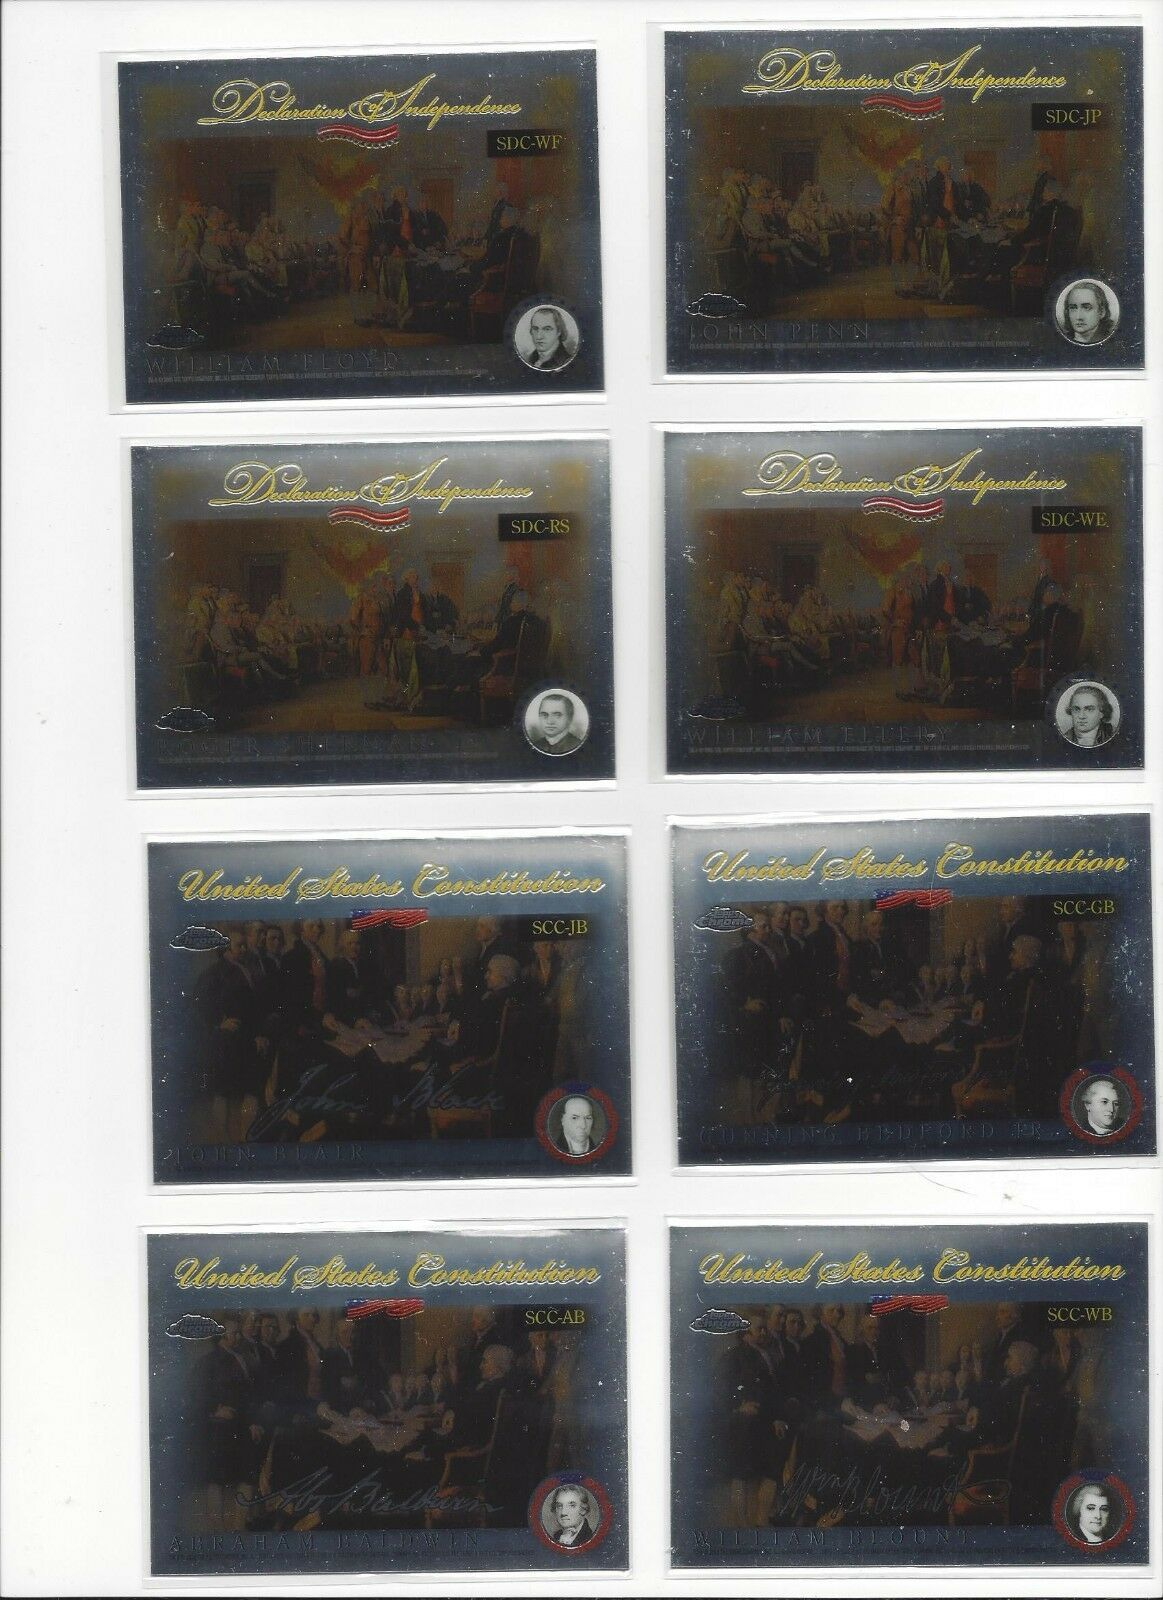 2006 TOPPS CHROME - DECLARATION INDEPENDENCE, U.S CONSTITUTION INSERTS - U PICK!